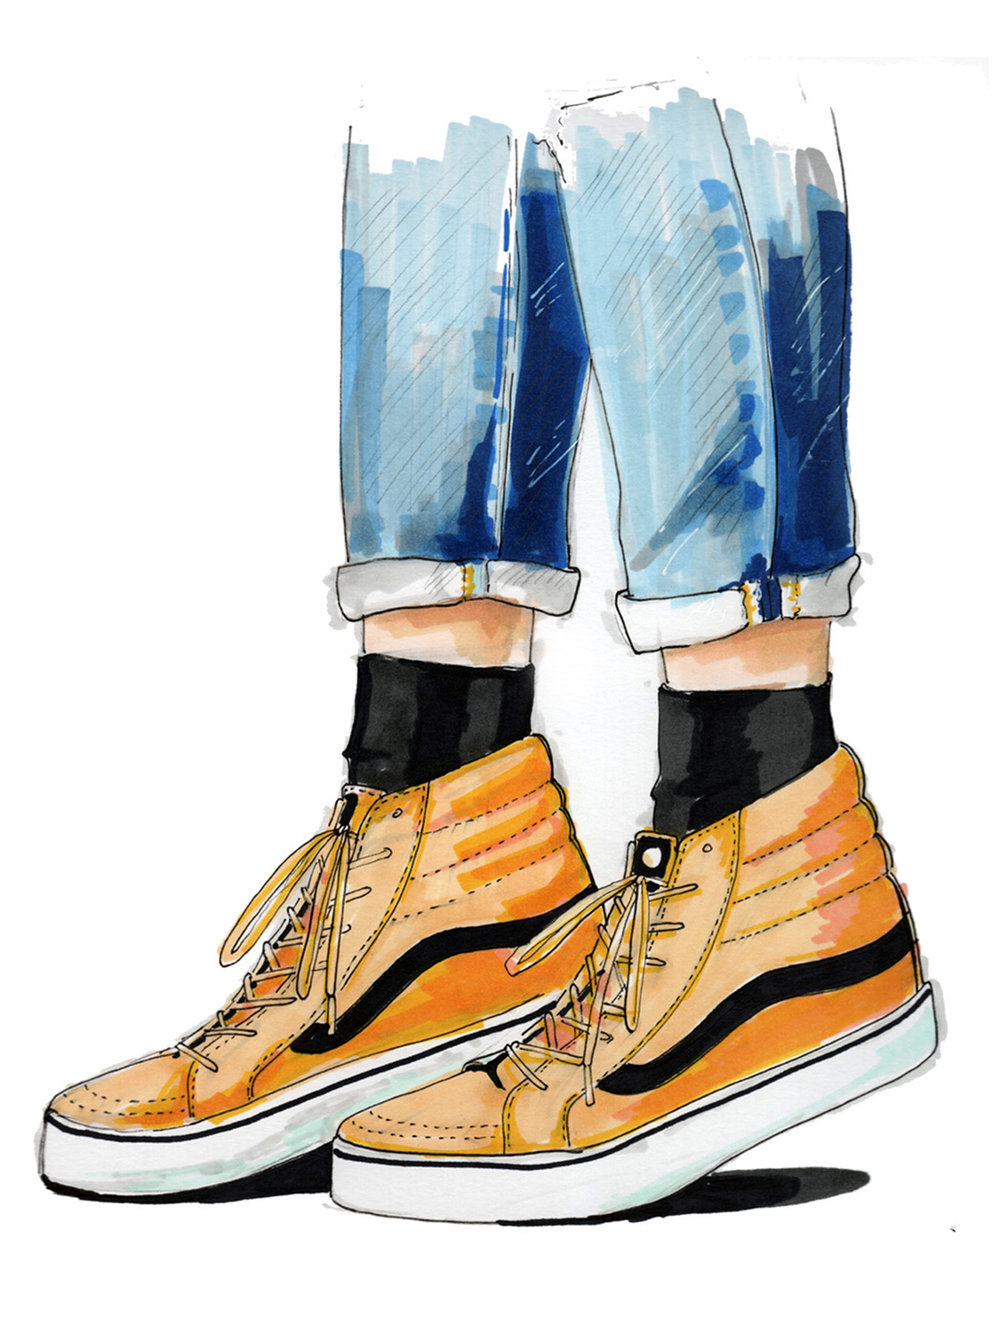 vans-shoes-illustration-morgan-swank-studio.jpg